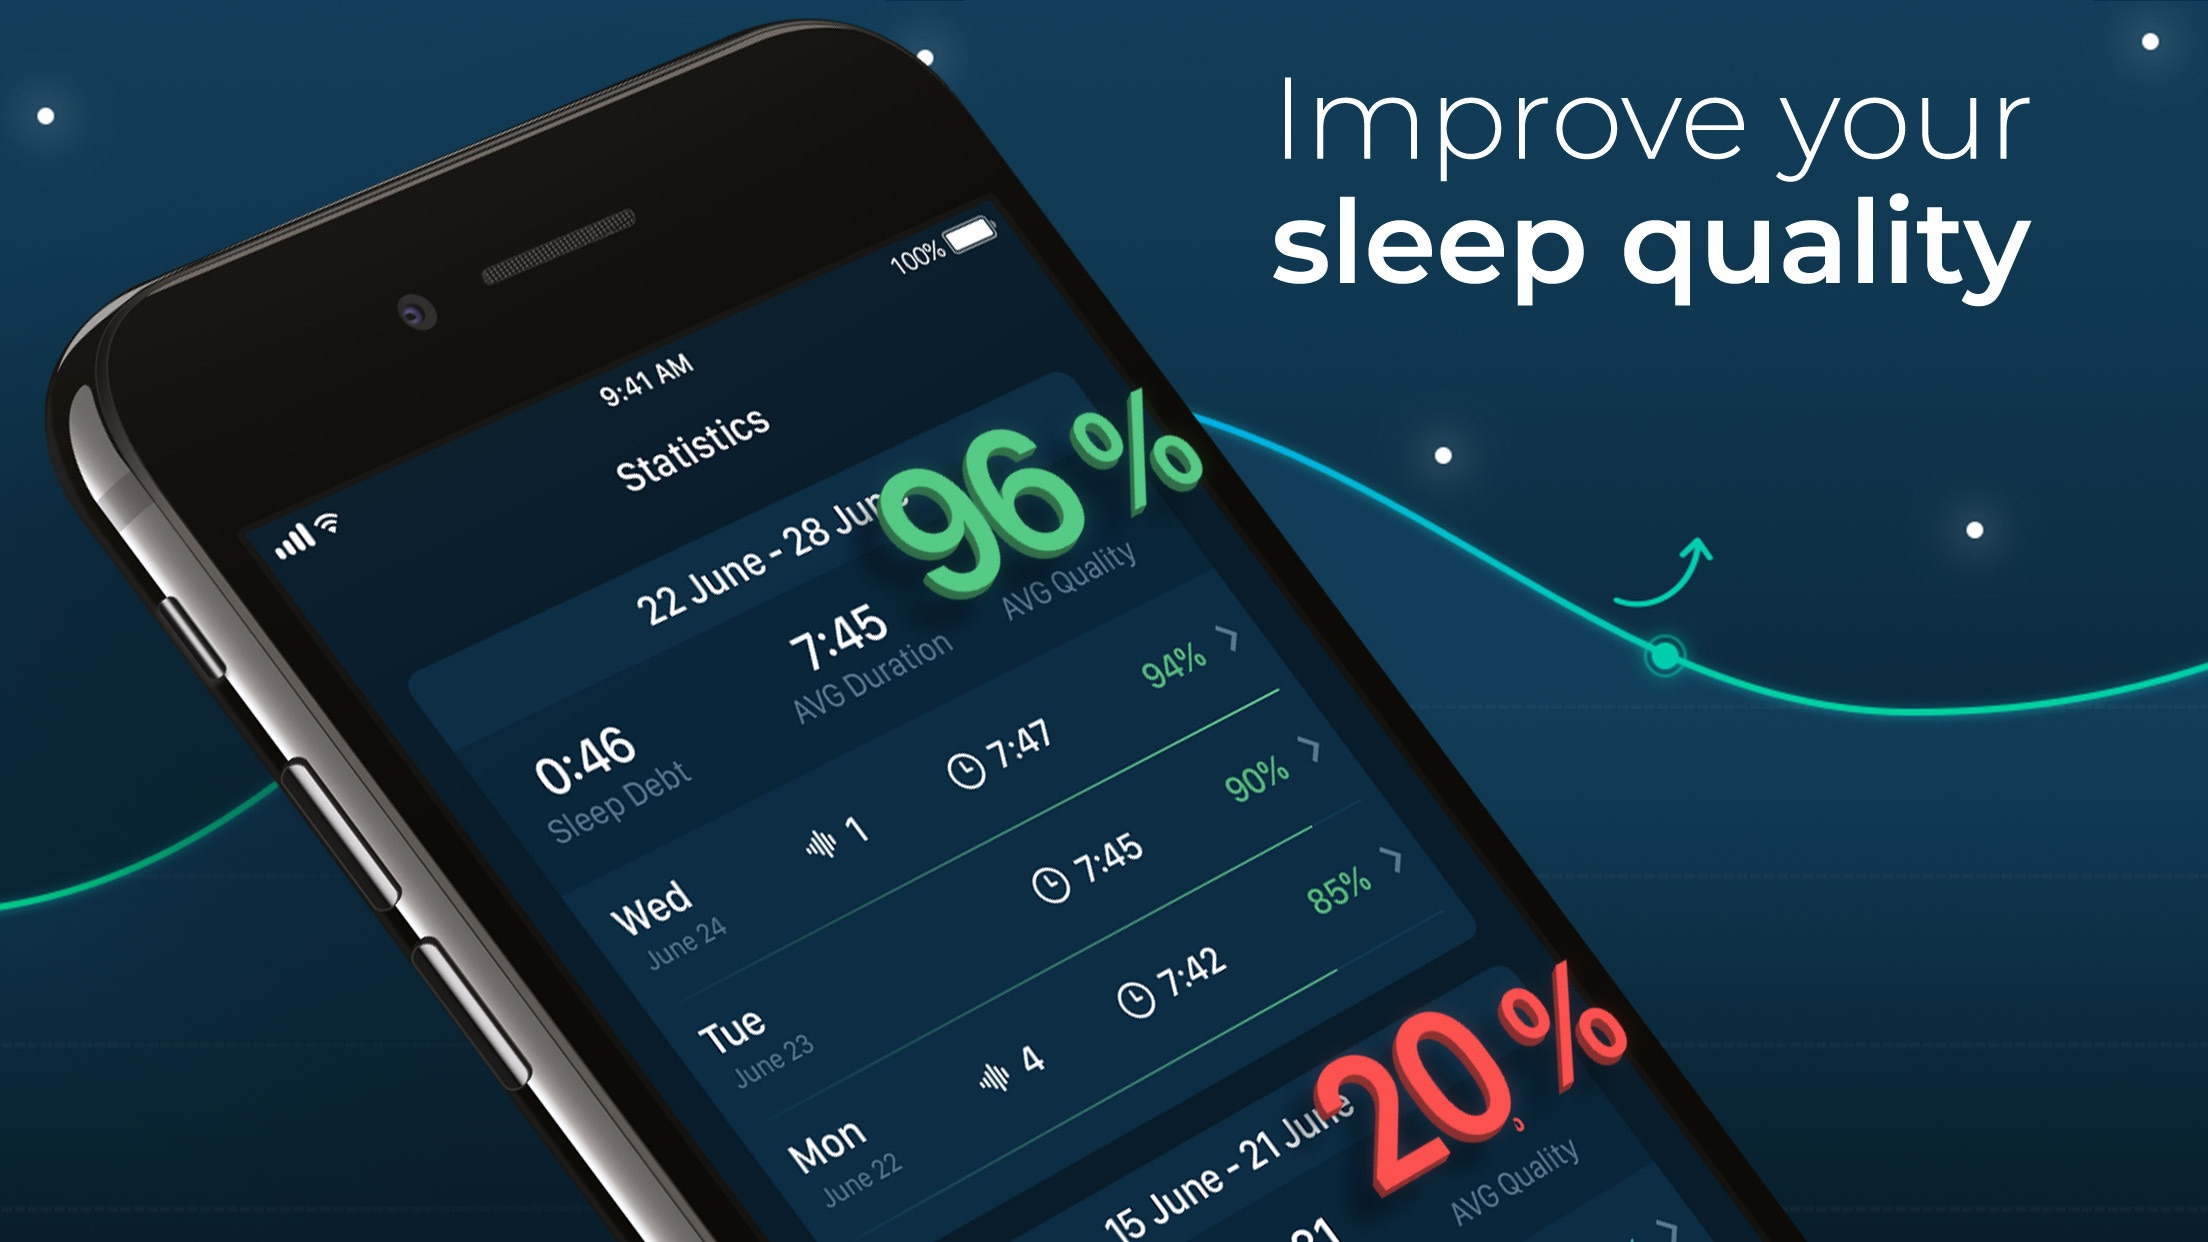 Sleepzy - Sleep Cycle Tracker Screenshot